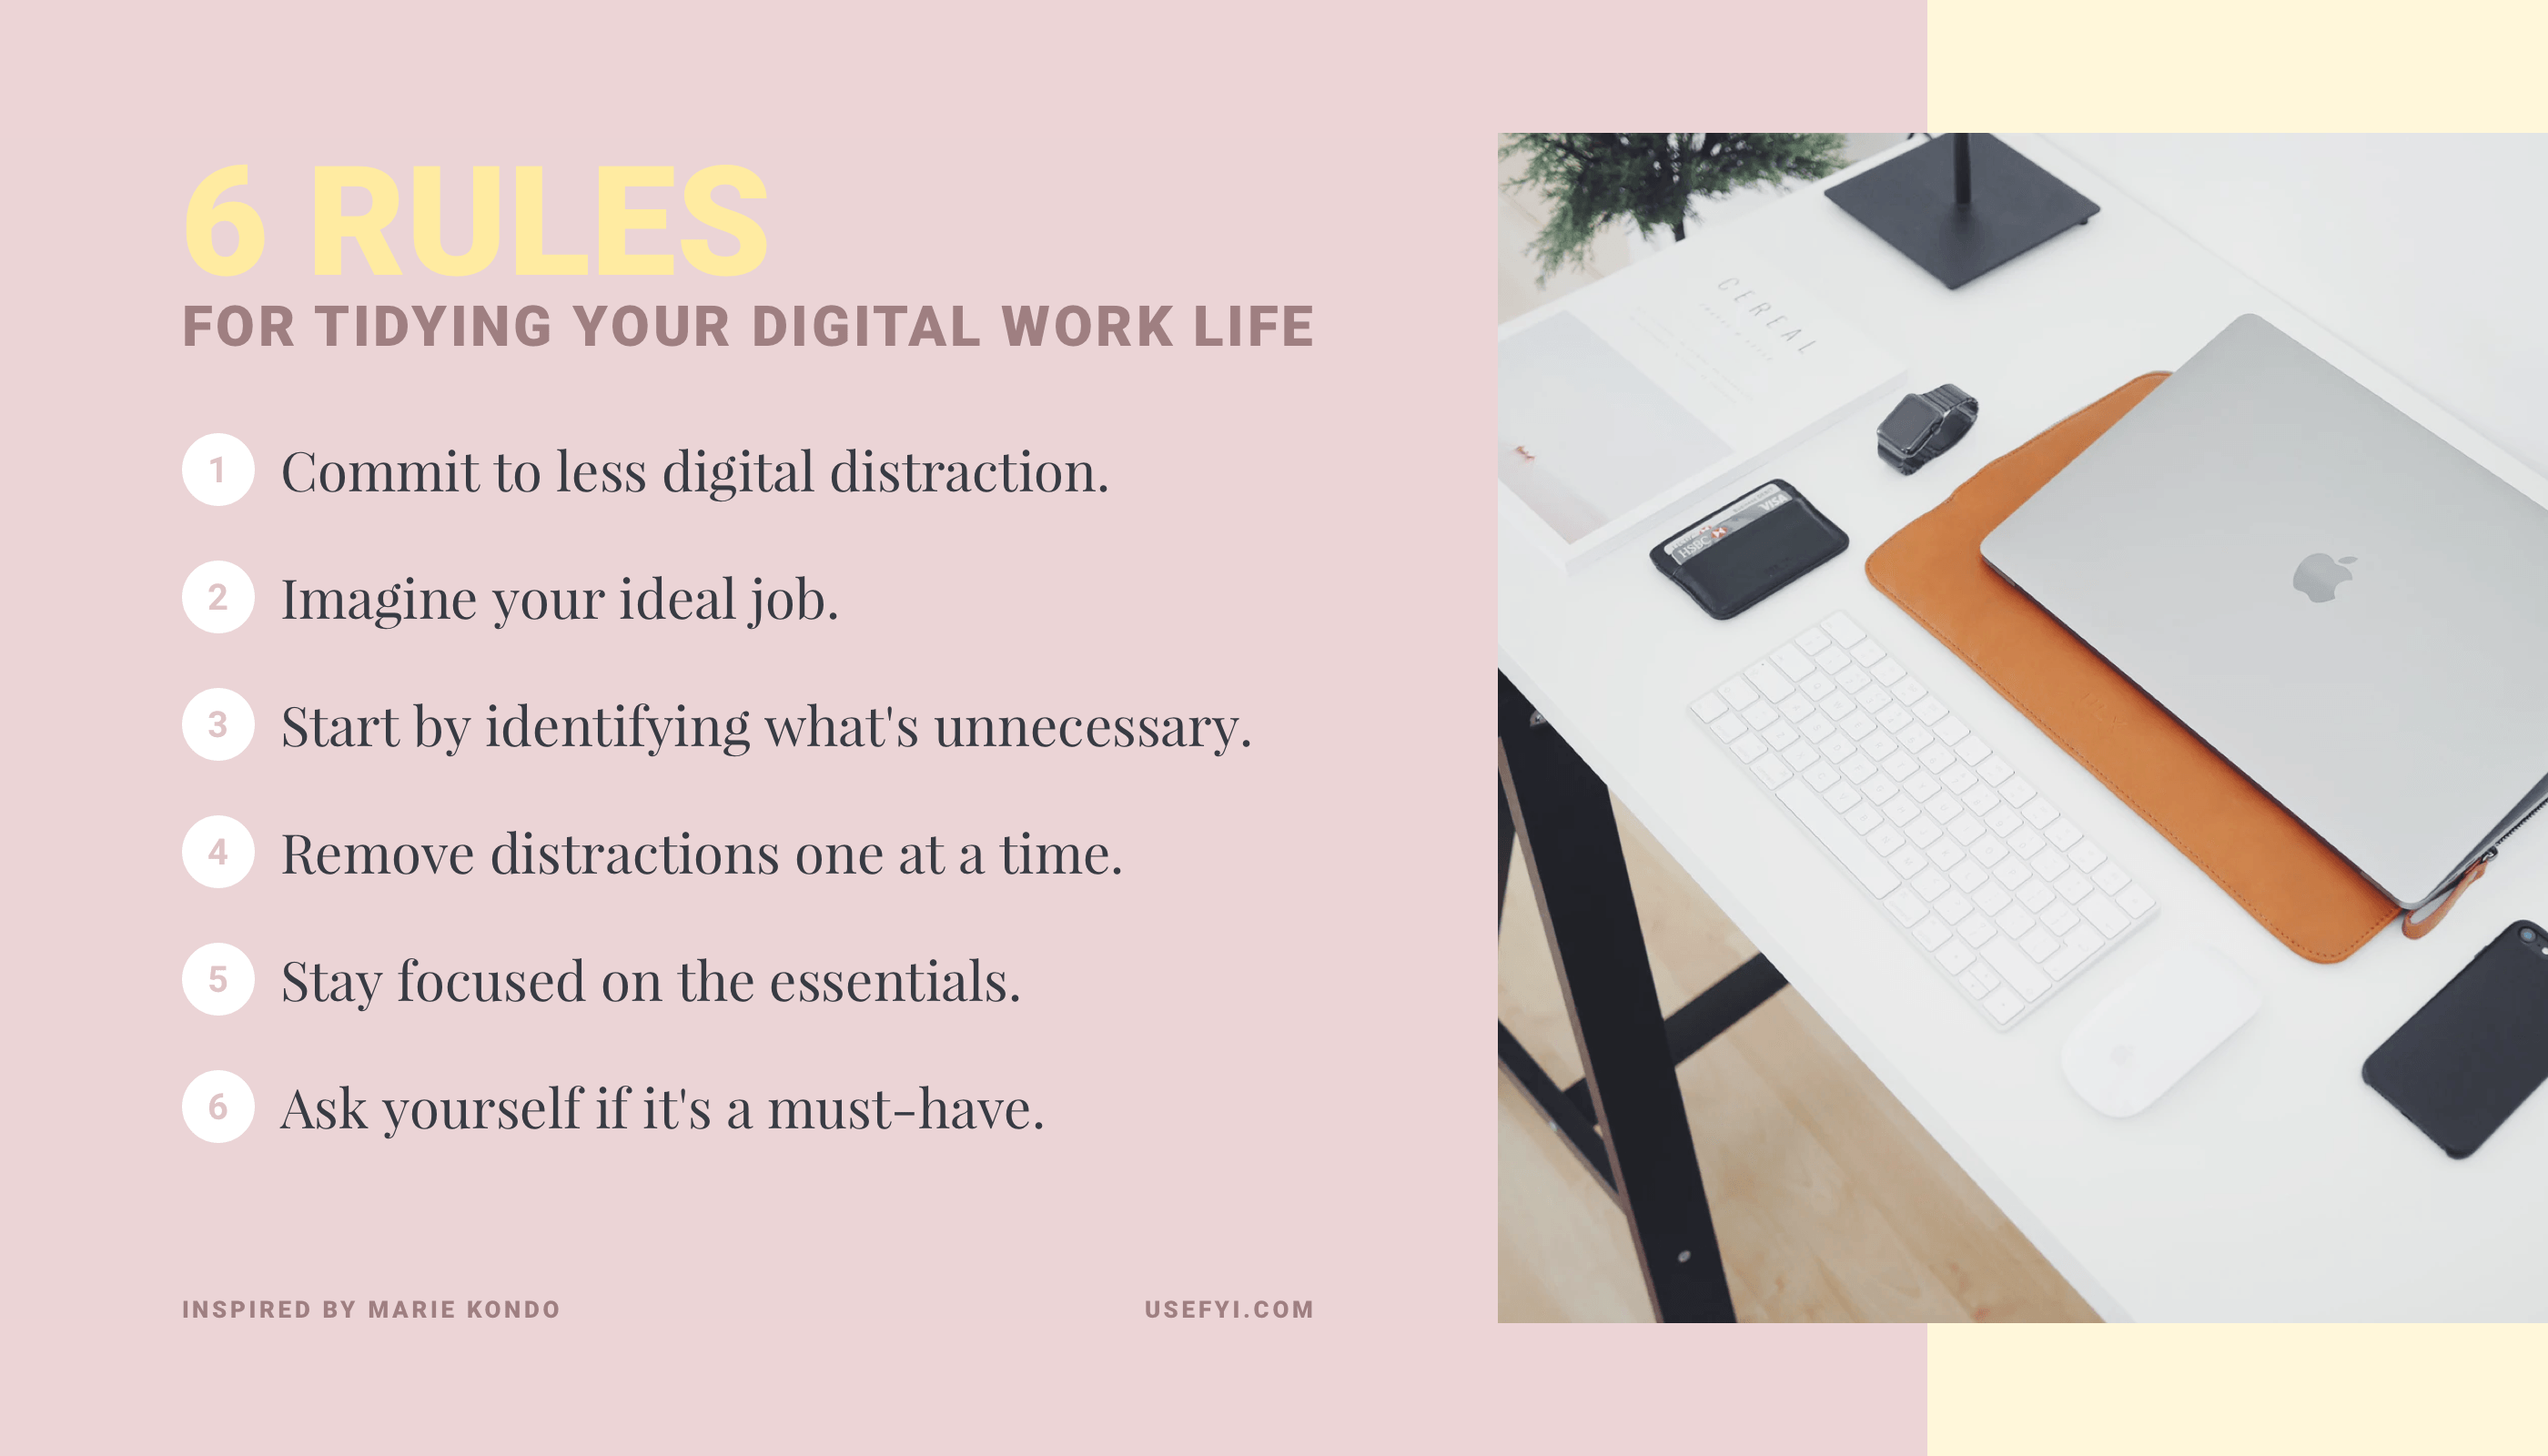 How to Use Marie Kondo's Konmari Method for Your Digital Work Life